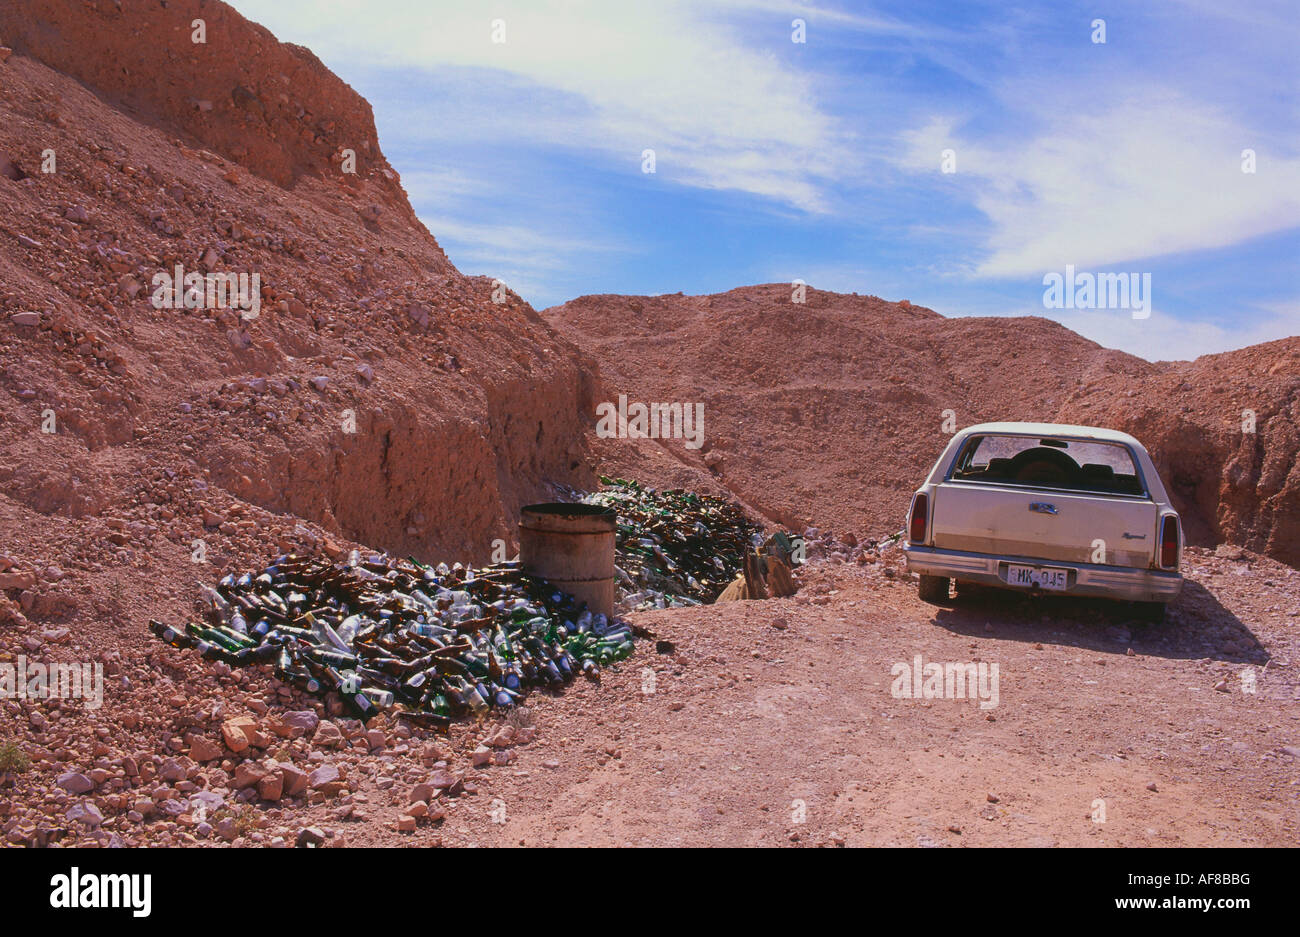 Glass for recycling and junk car, Coober Pedy, the opal capital of ...